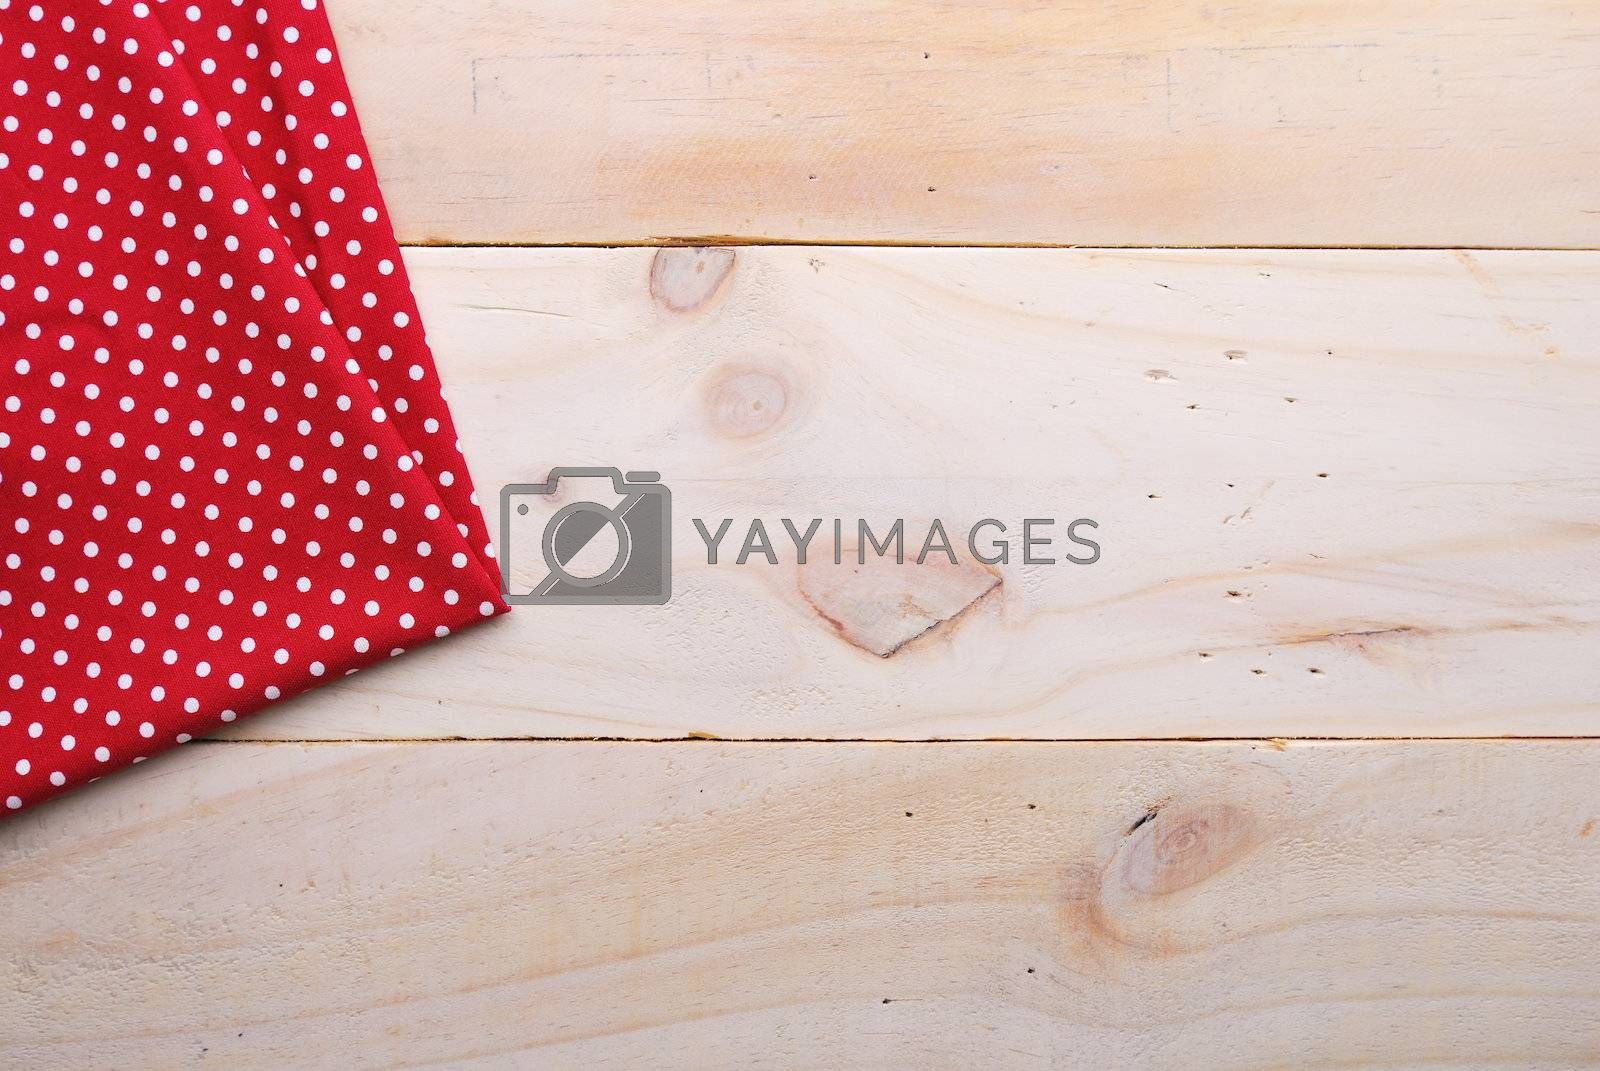 Royalty free image of the background made from tablecloth on wooden table by teen00000